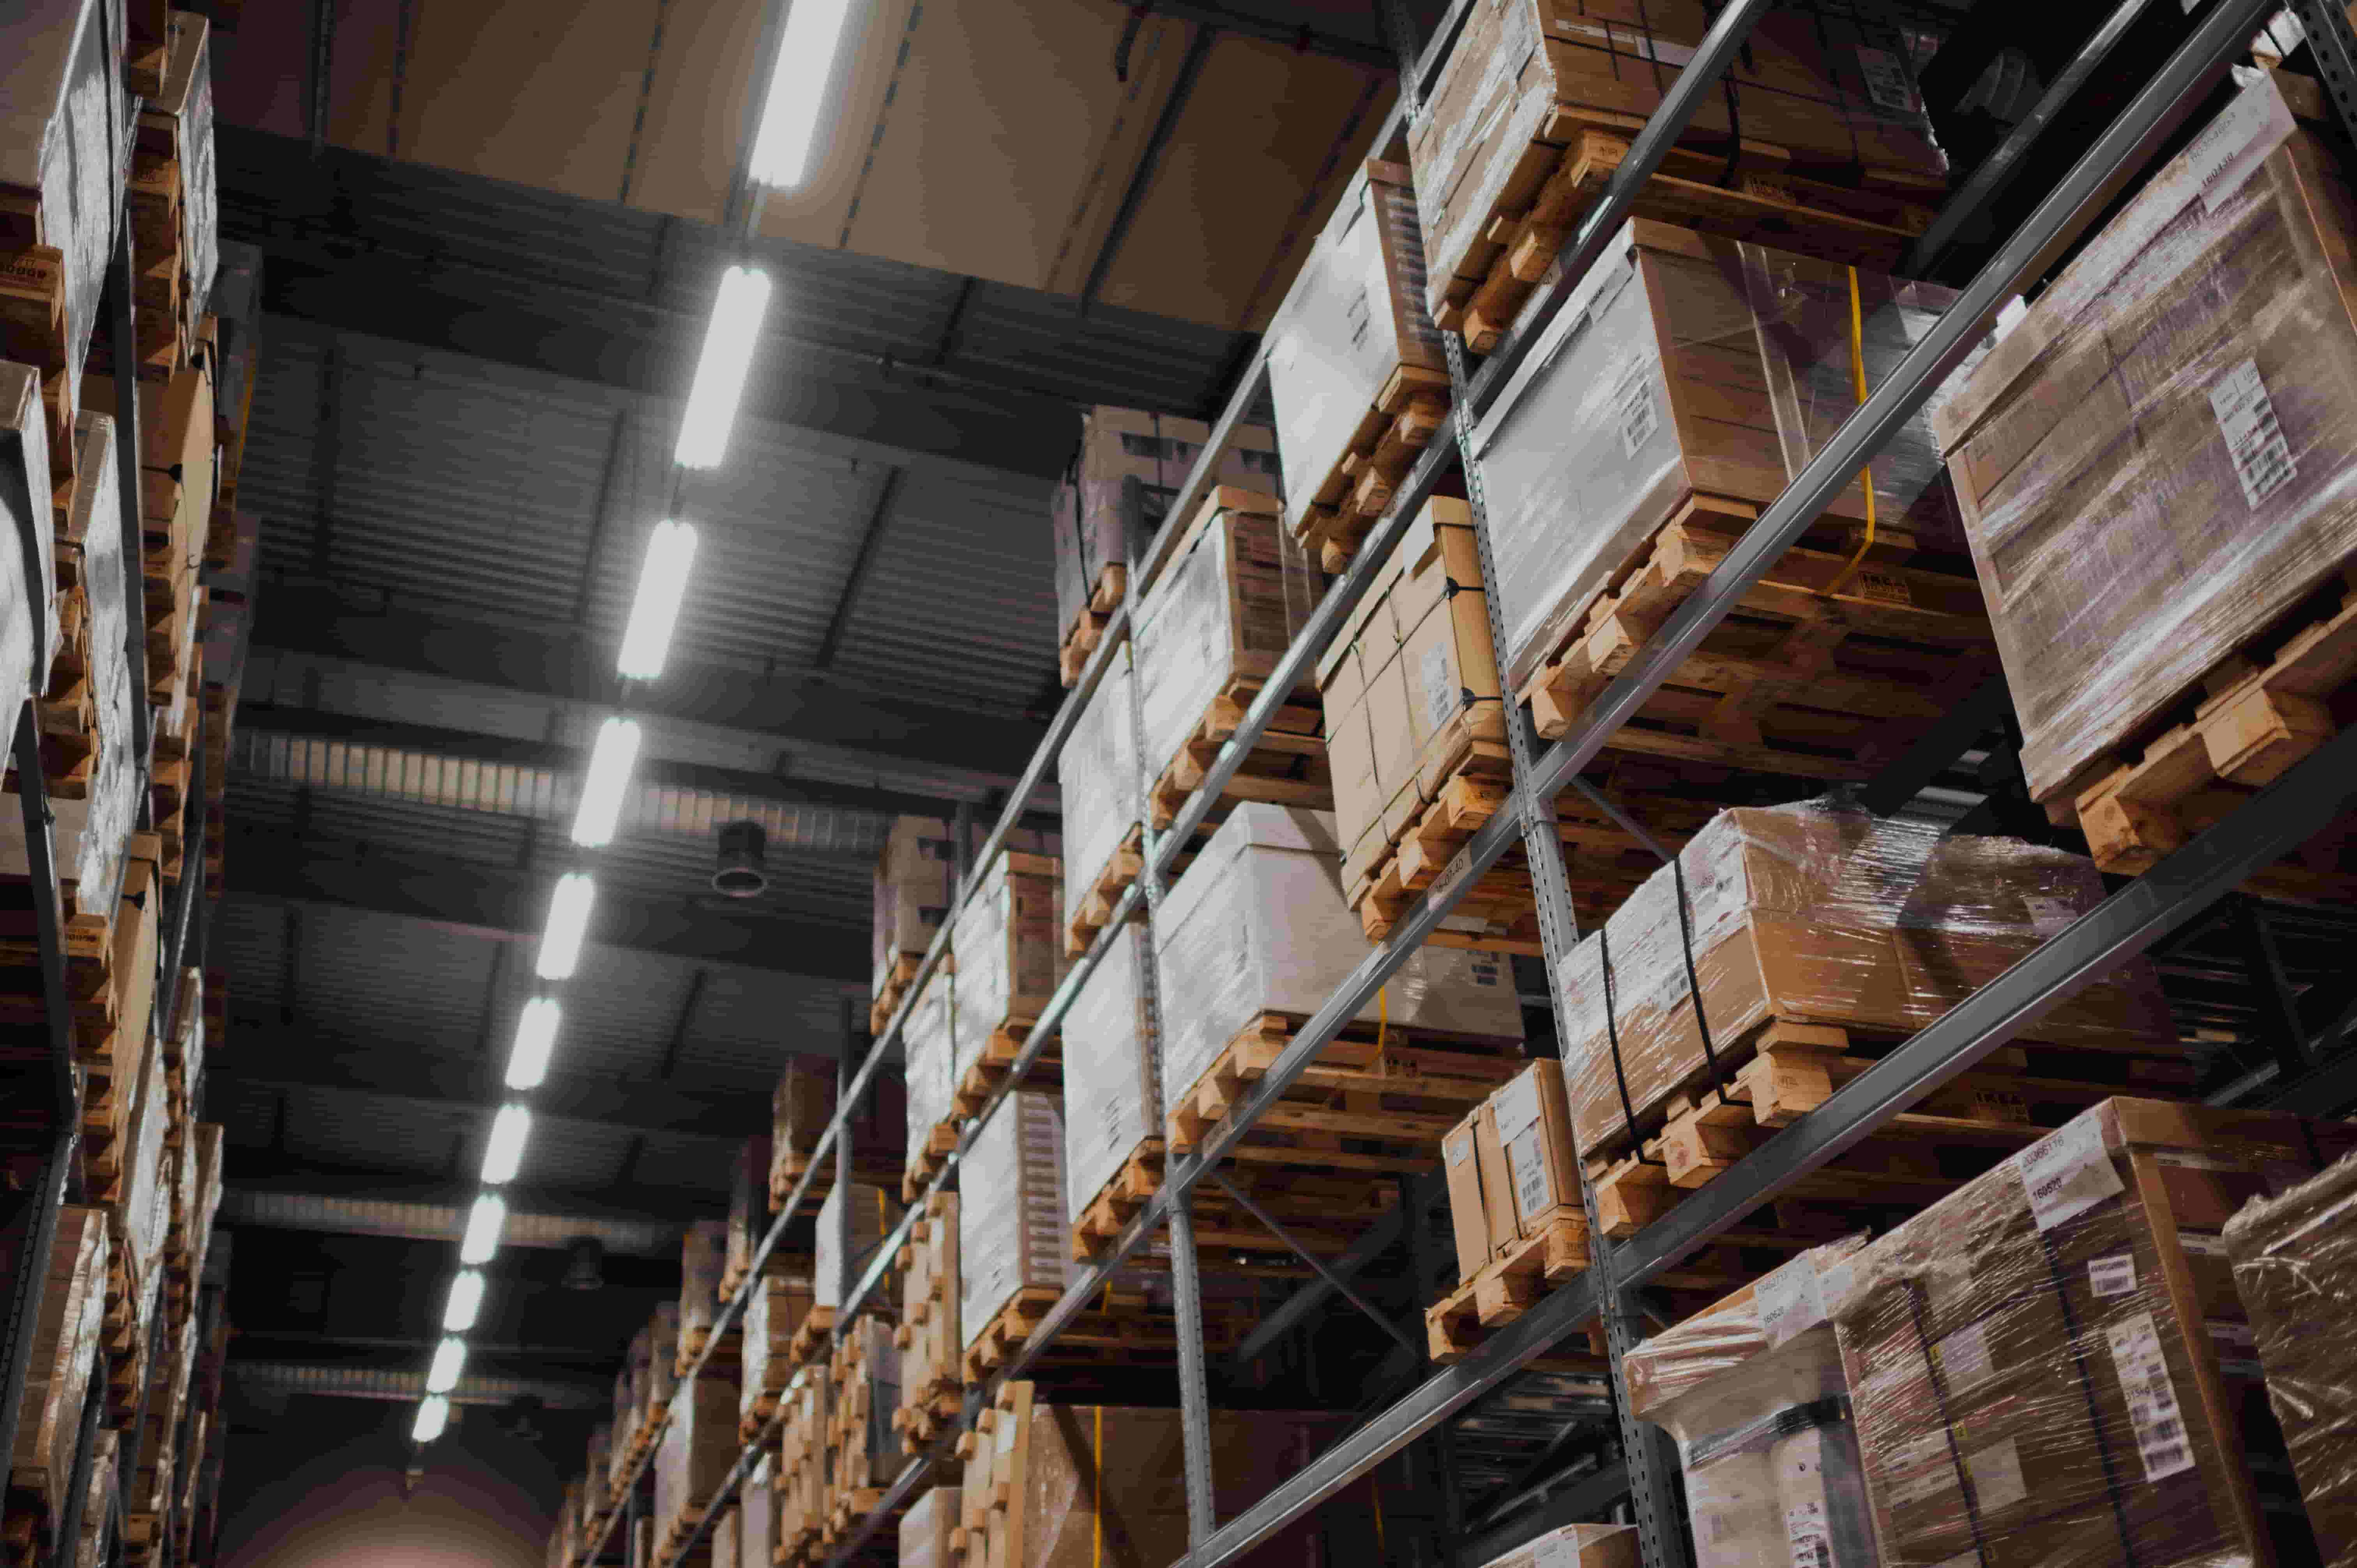 Best Practices for Warehouse Safety and Managing Stock